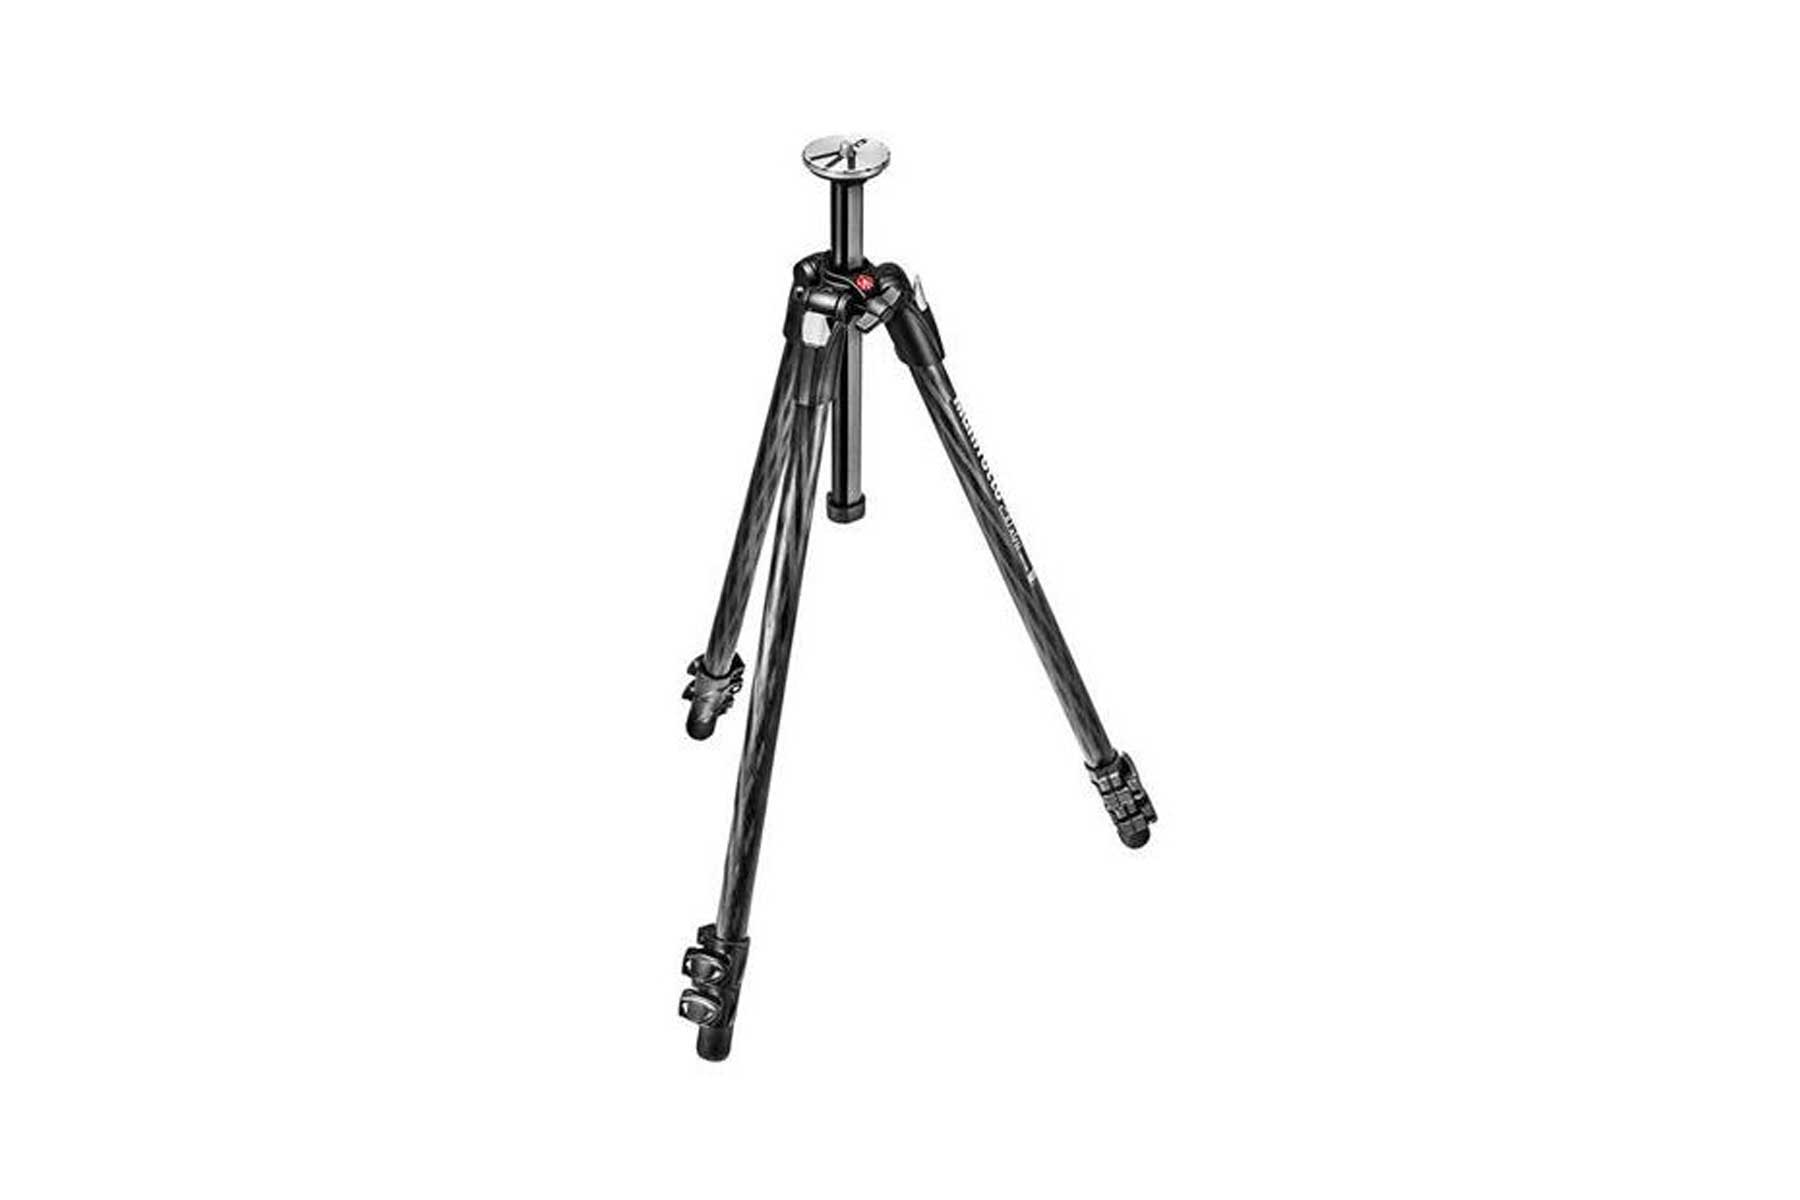 Manfrotto 290 Xtra 3-Section Carbon Fiber Tripod